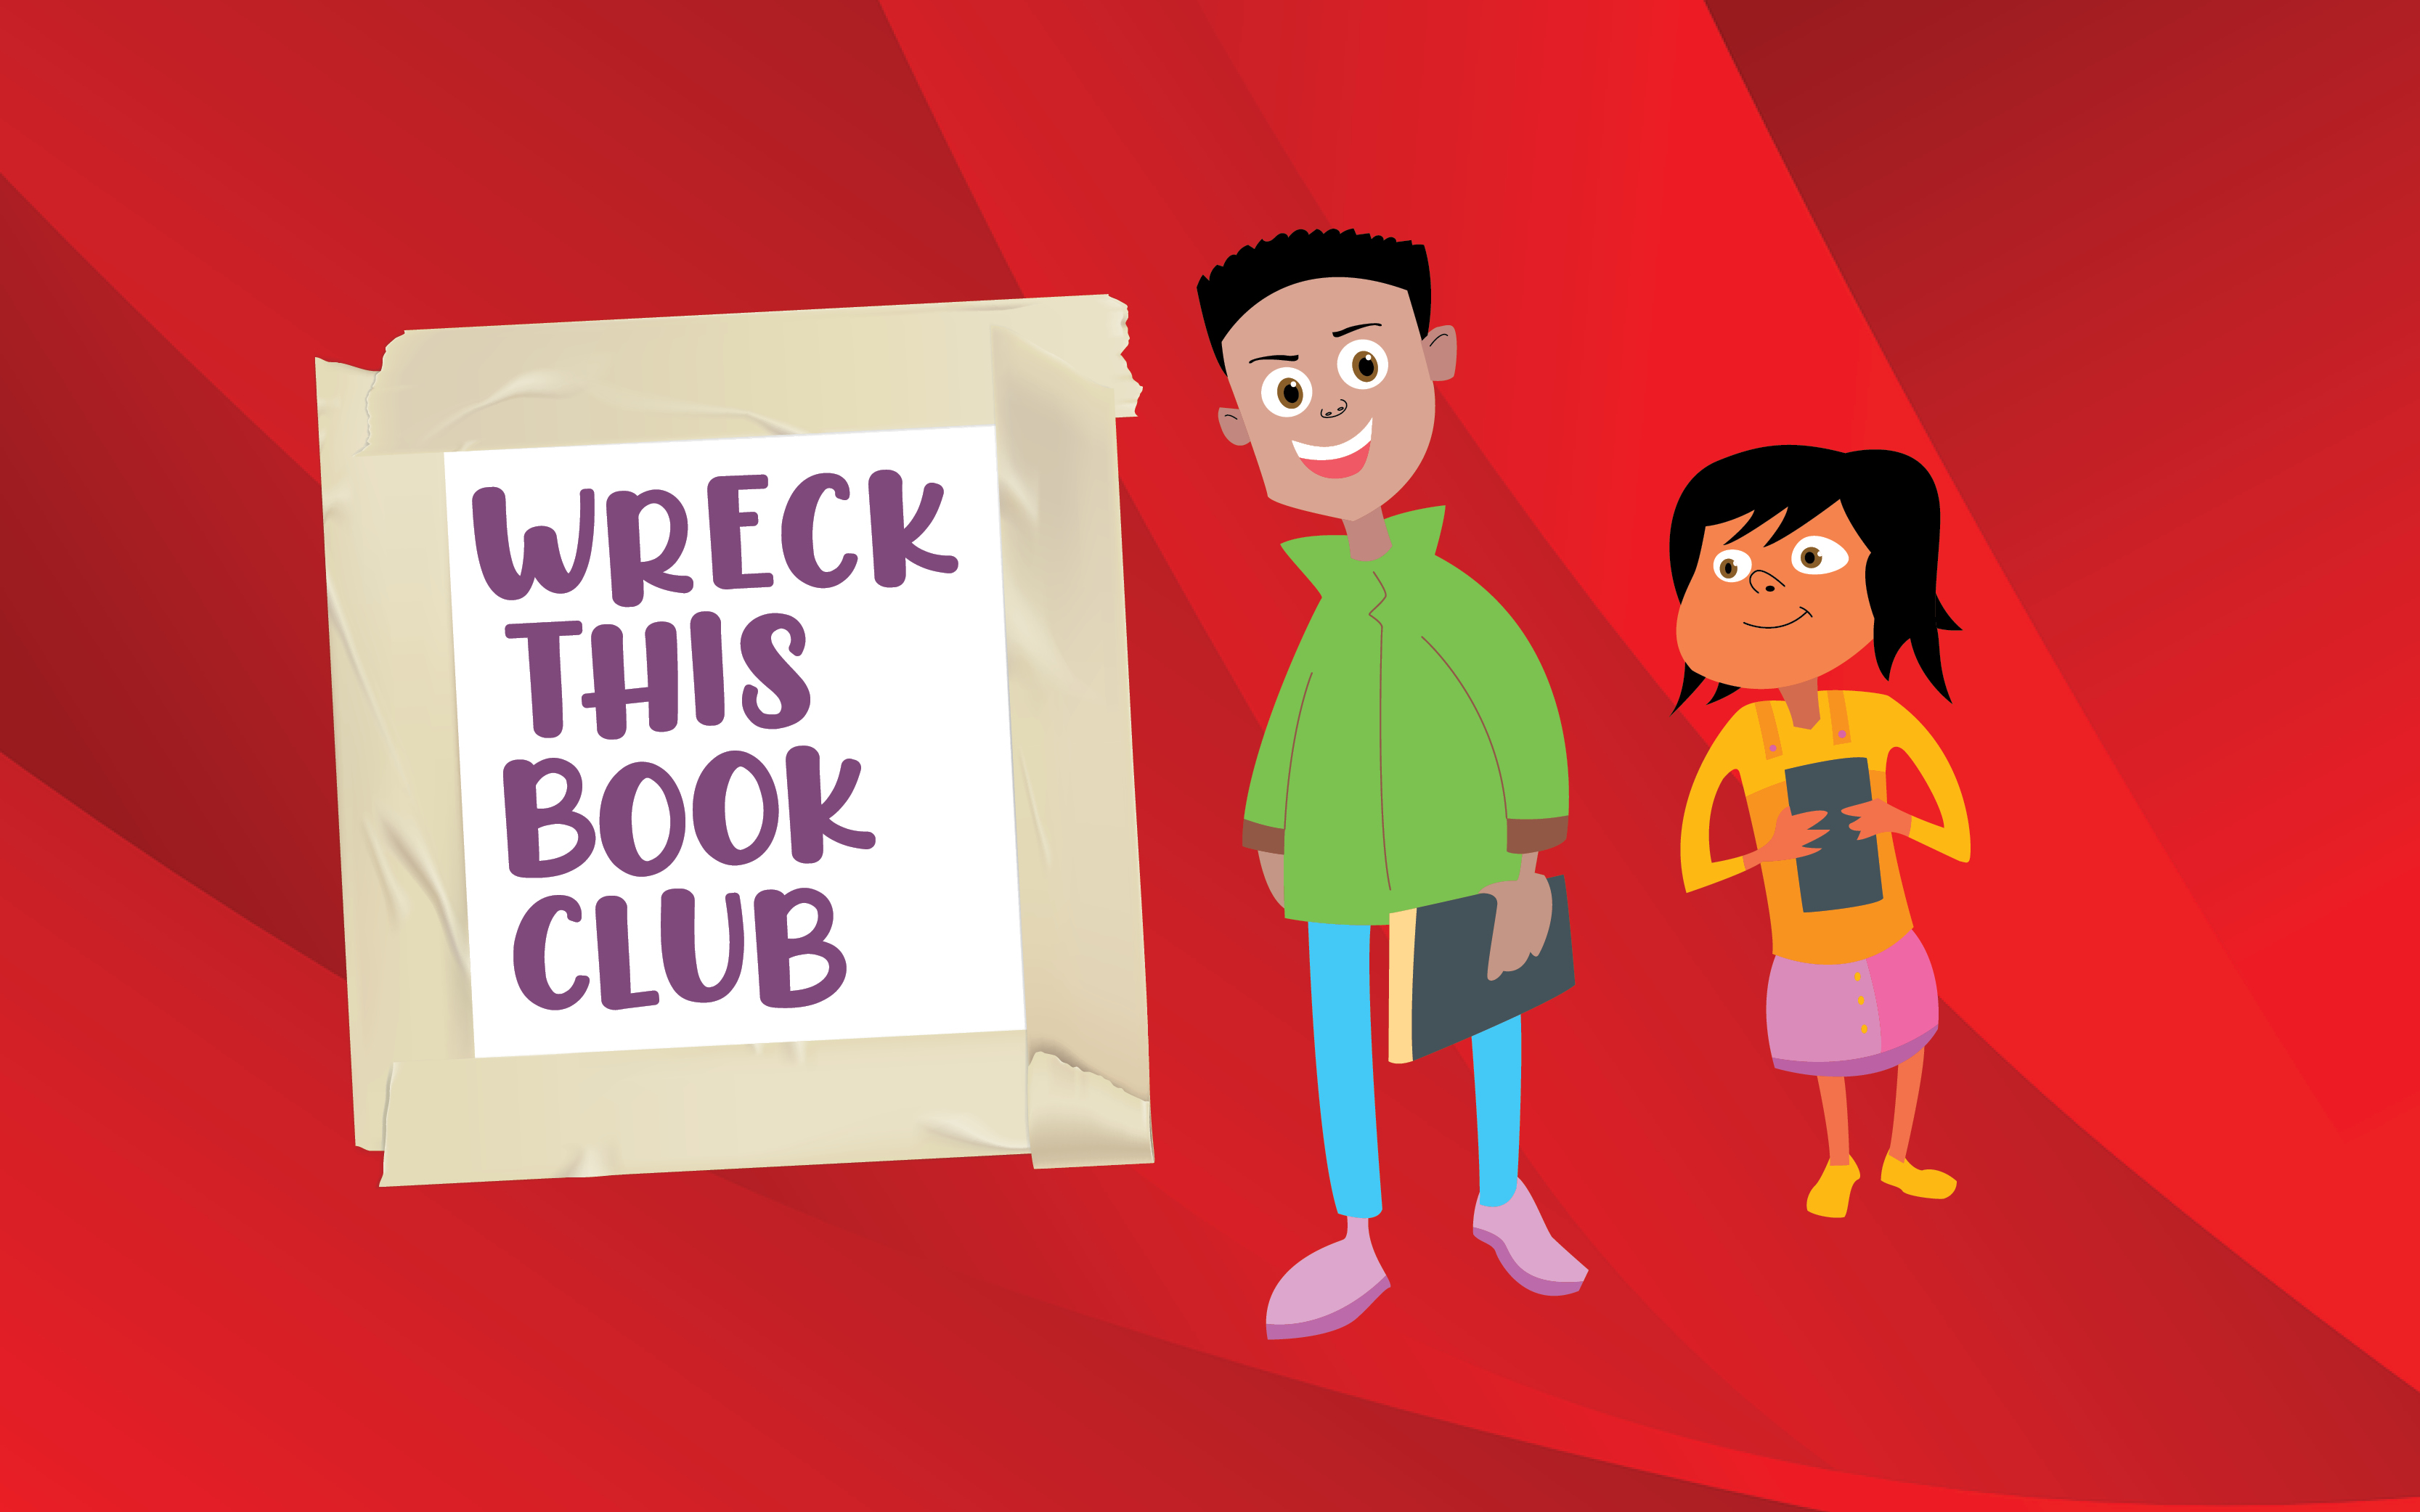 Image of a boy and a girl holding books on a red background